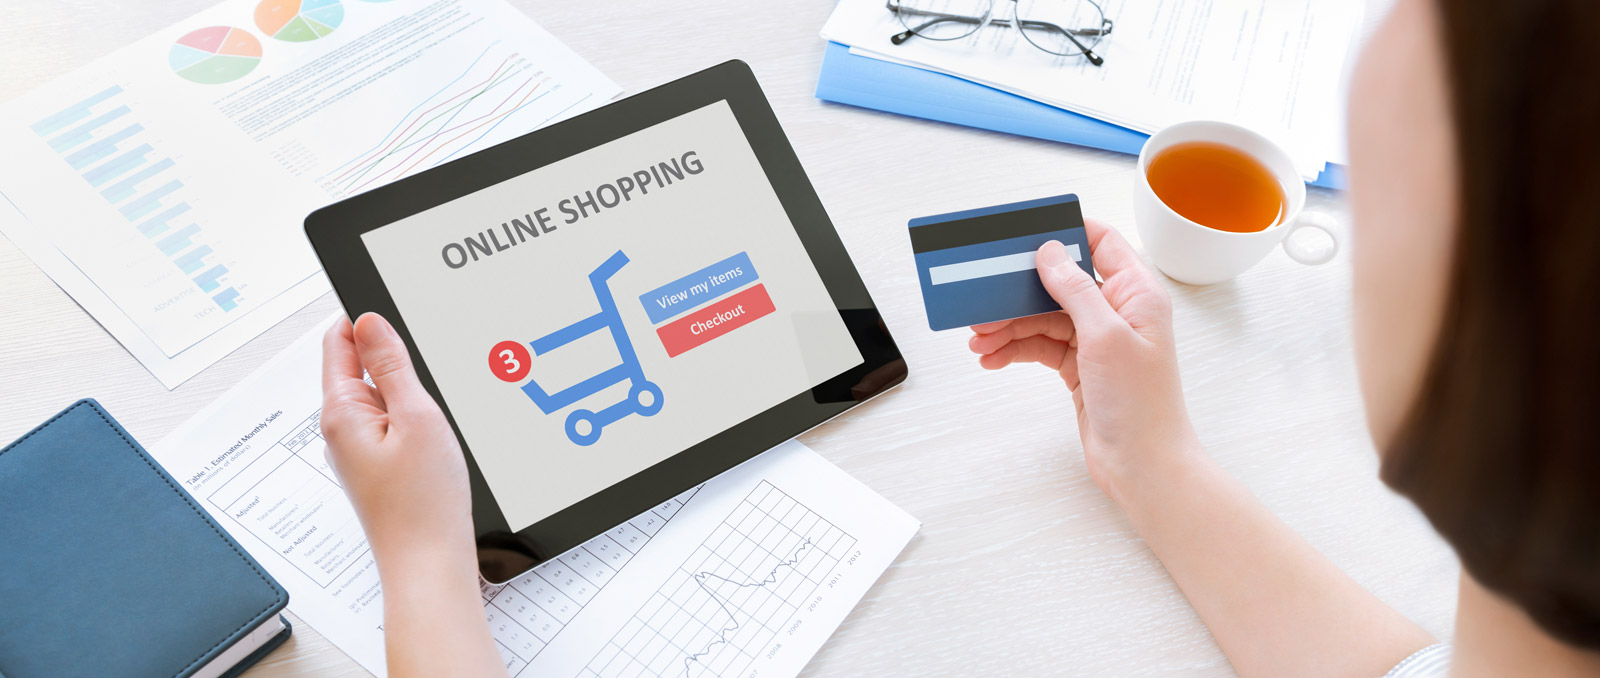 Be taught Tips on how to be a Savvy On-line Shopper